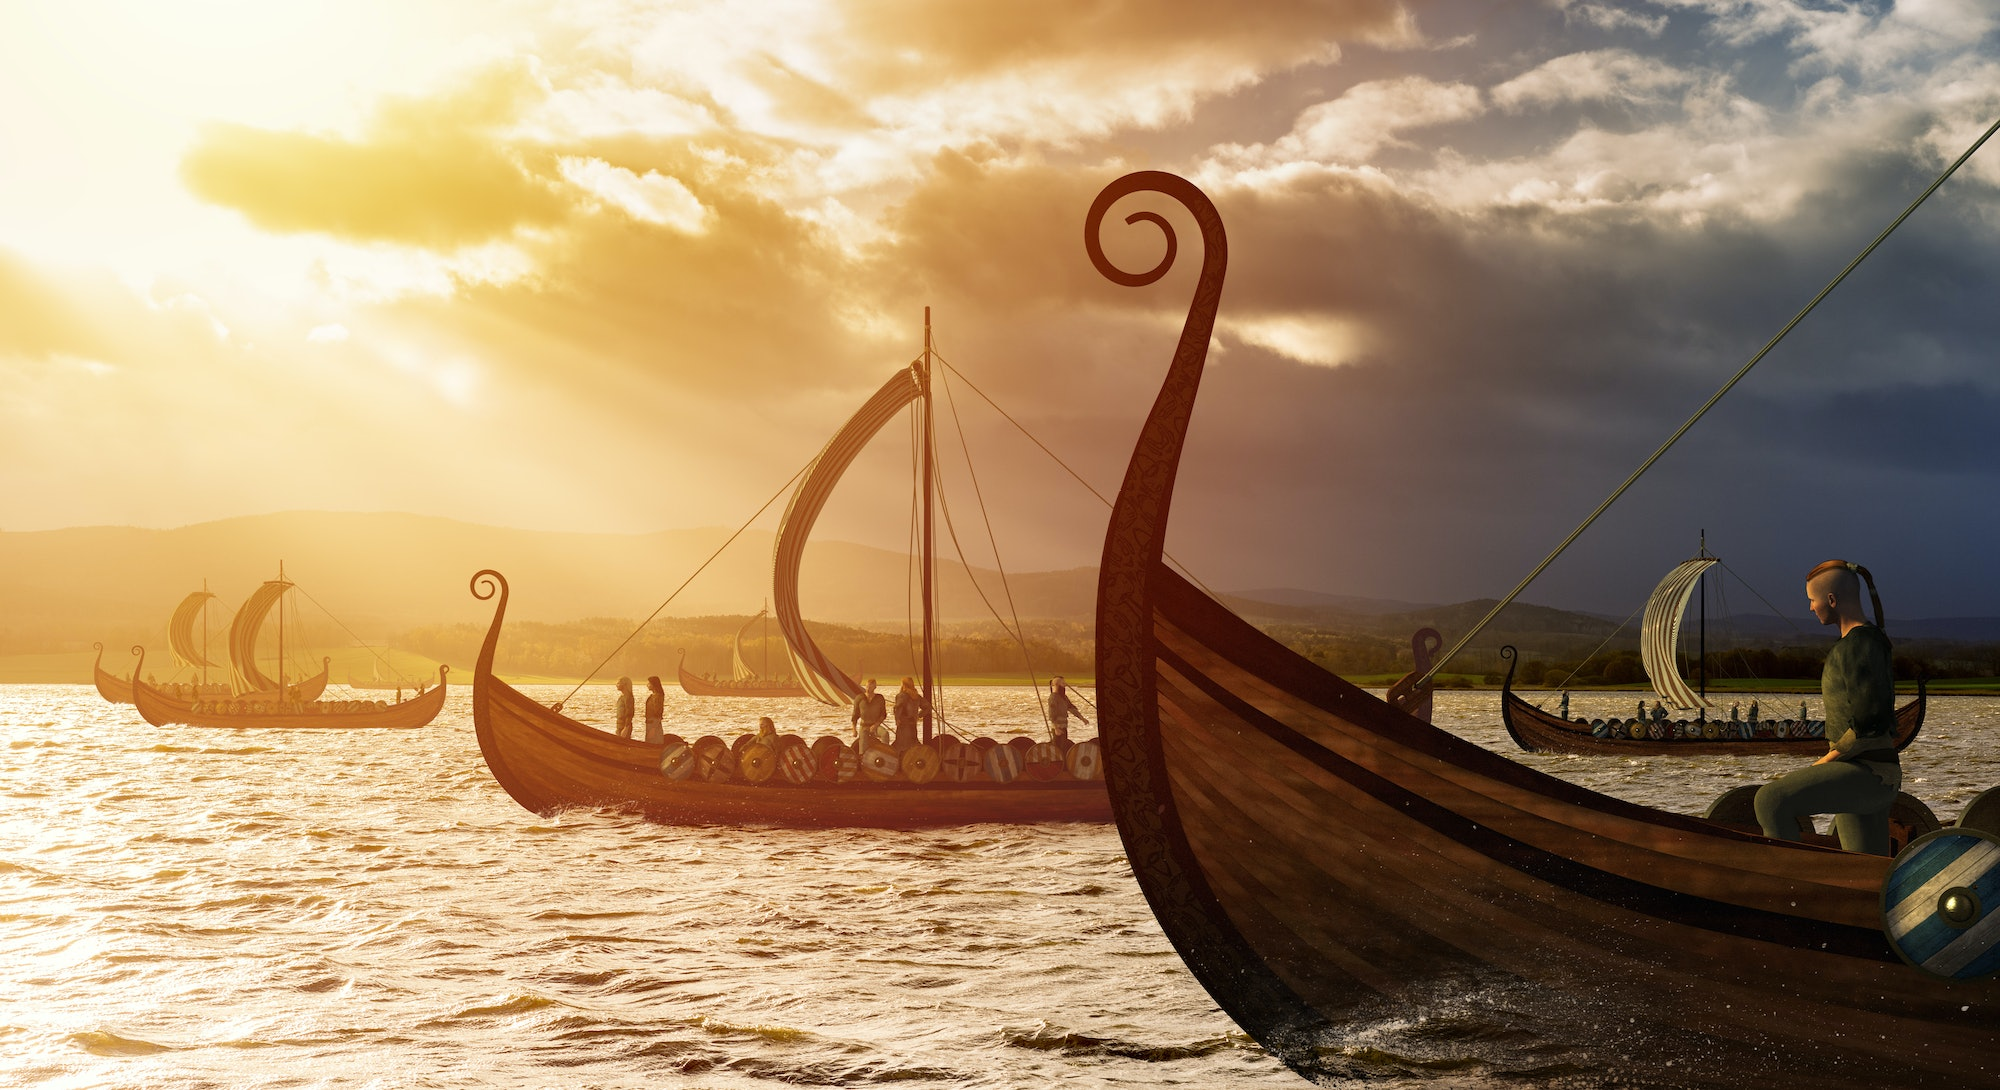 Viking ships on the water under the sunlight and dark storm. Invasion in the storm. 3D illustration.